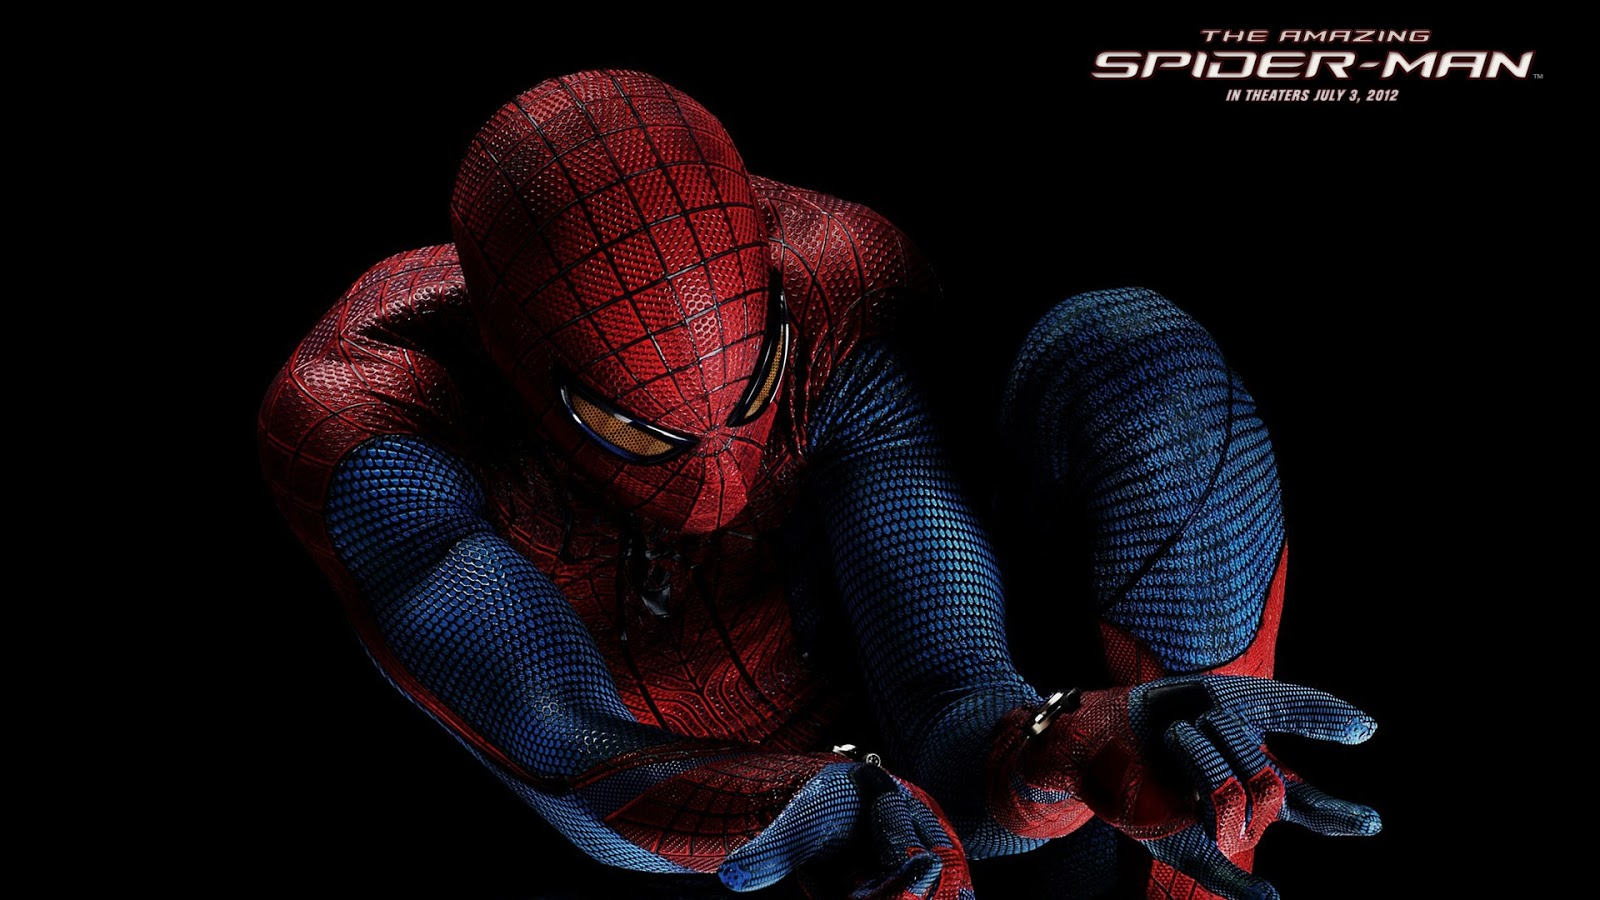 wallpapers The Amazing Spiderman 2012 1080p HD Wallpapers 1920x1080 1600x900